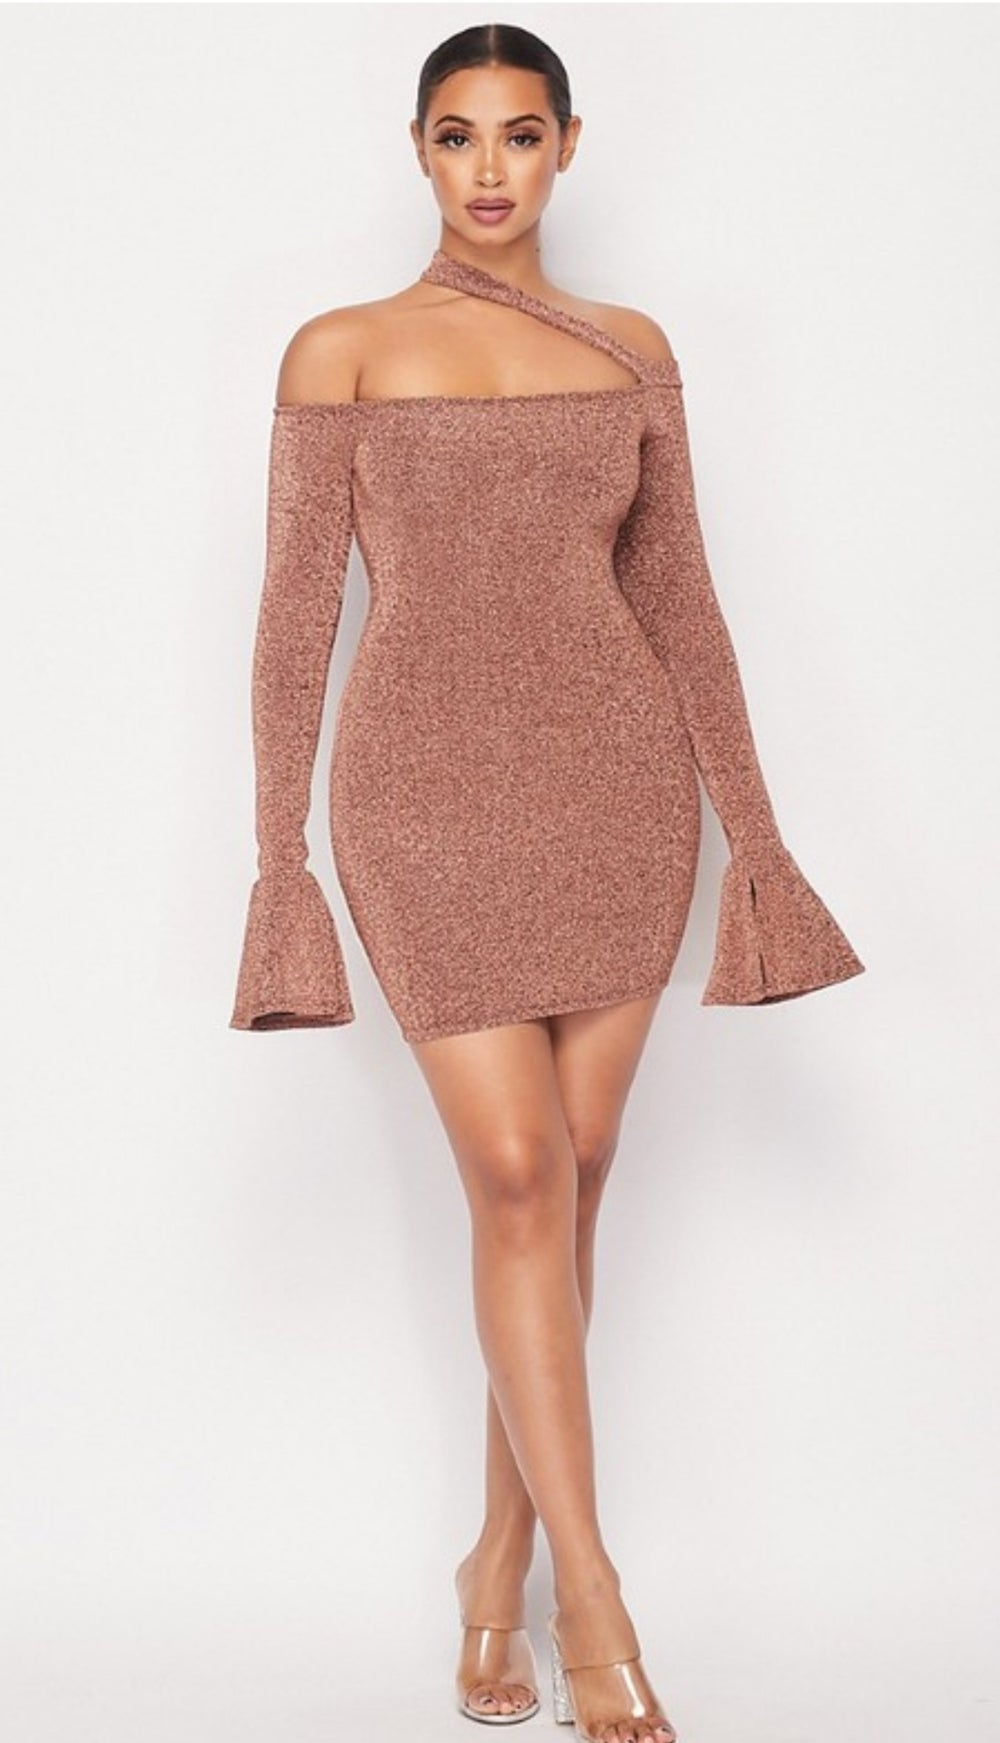 Image of Almost Naked Dress